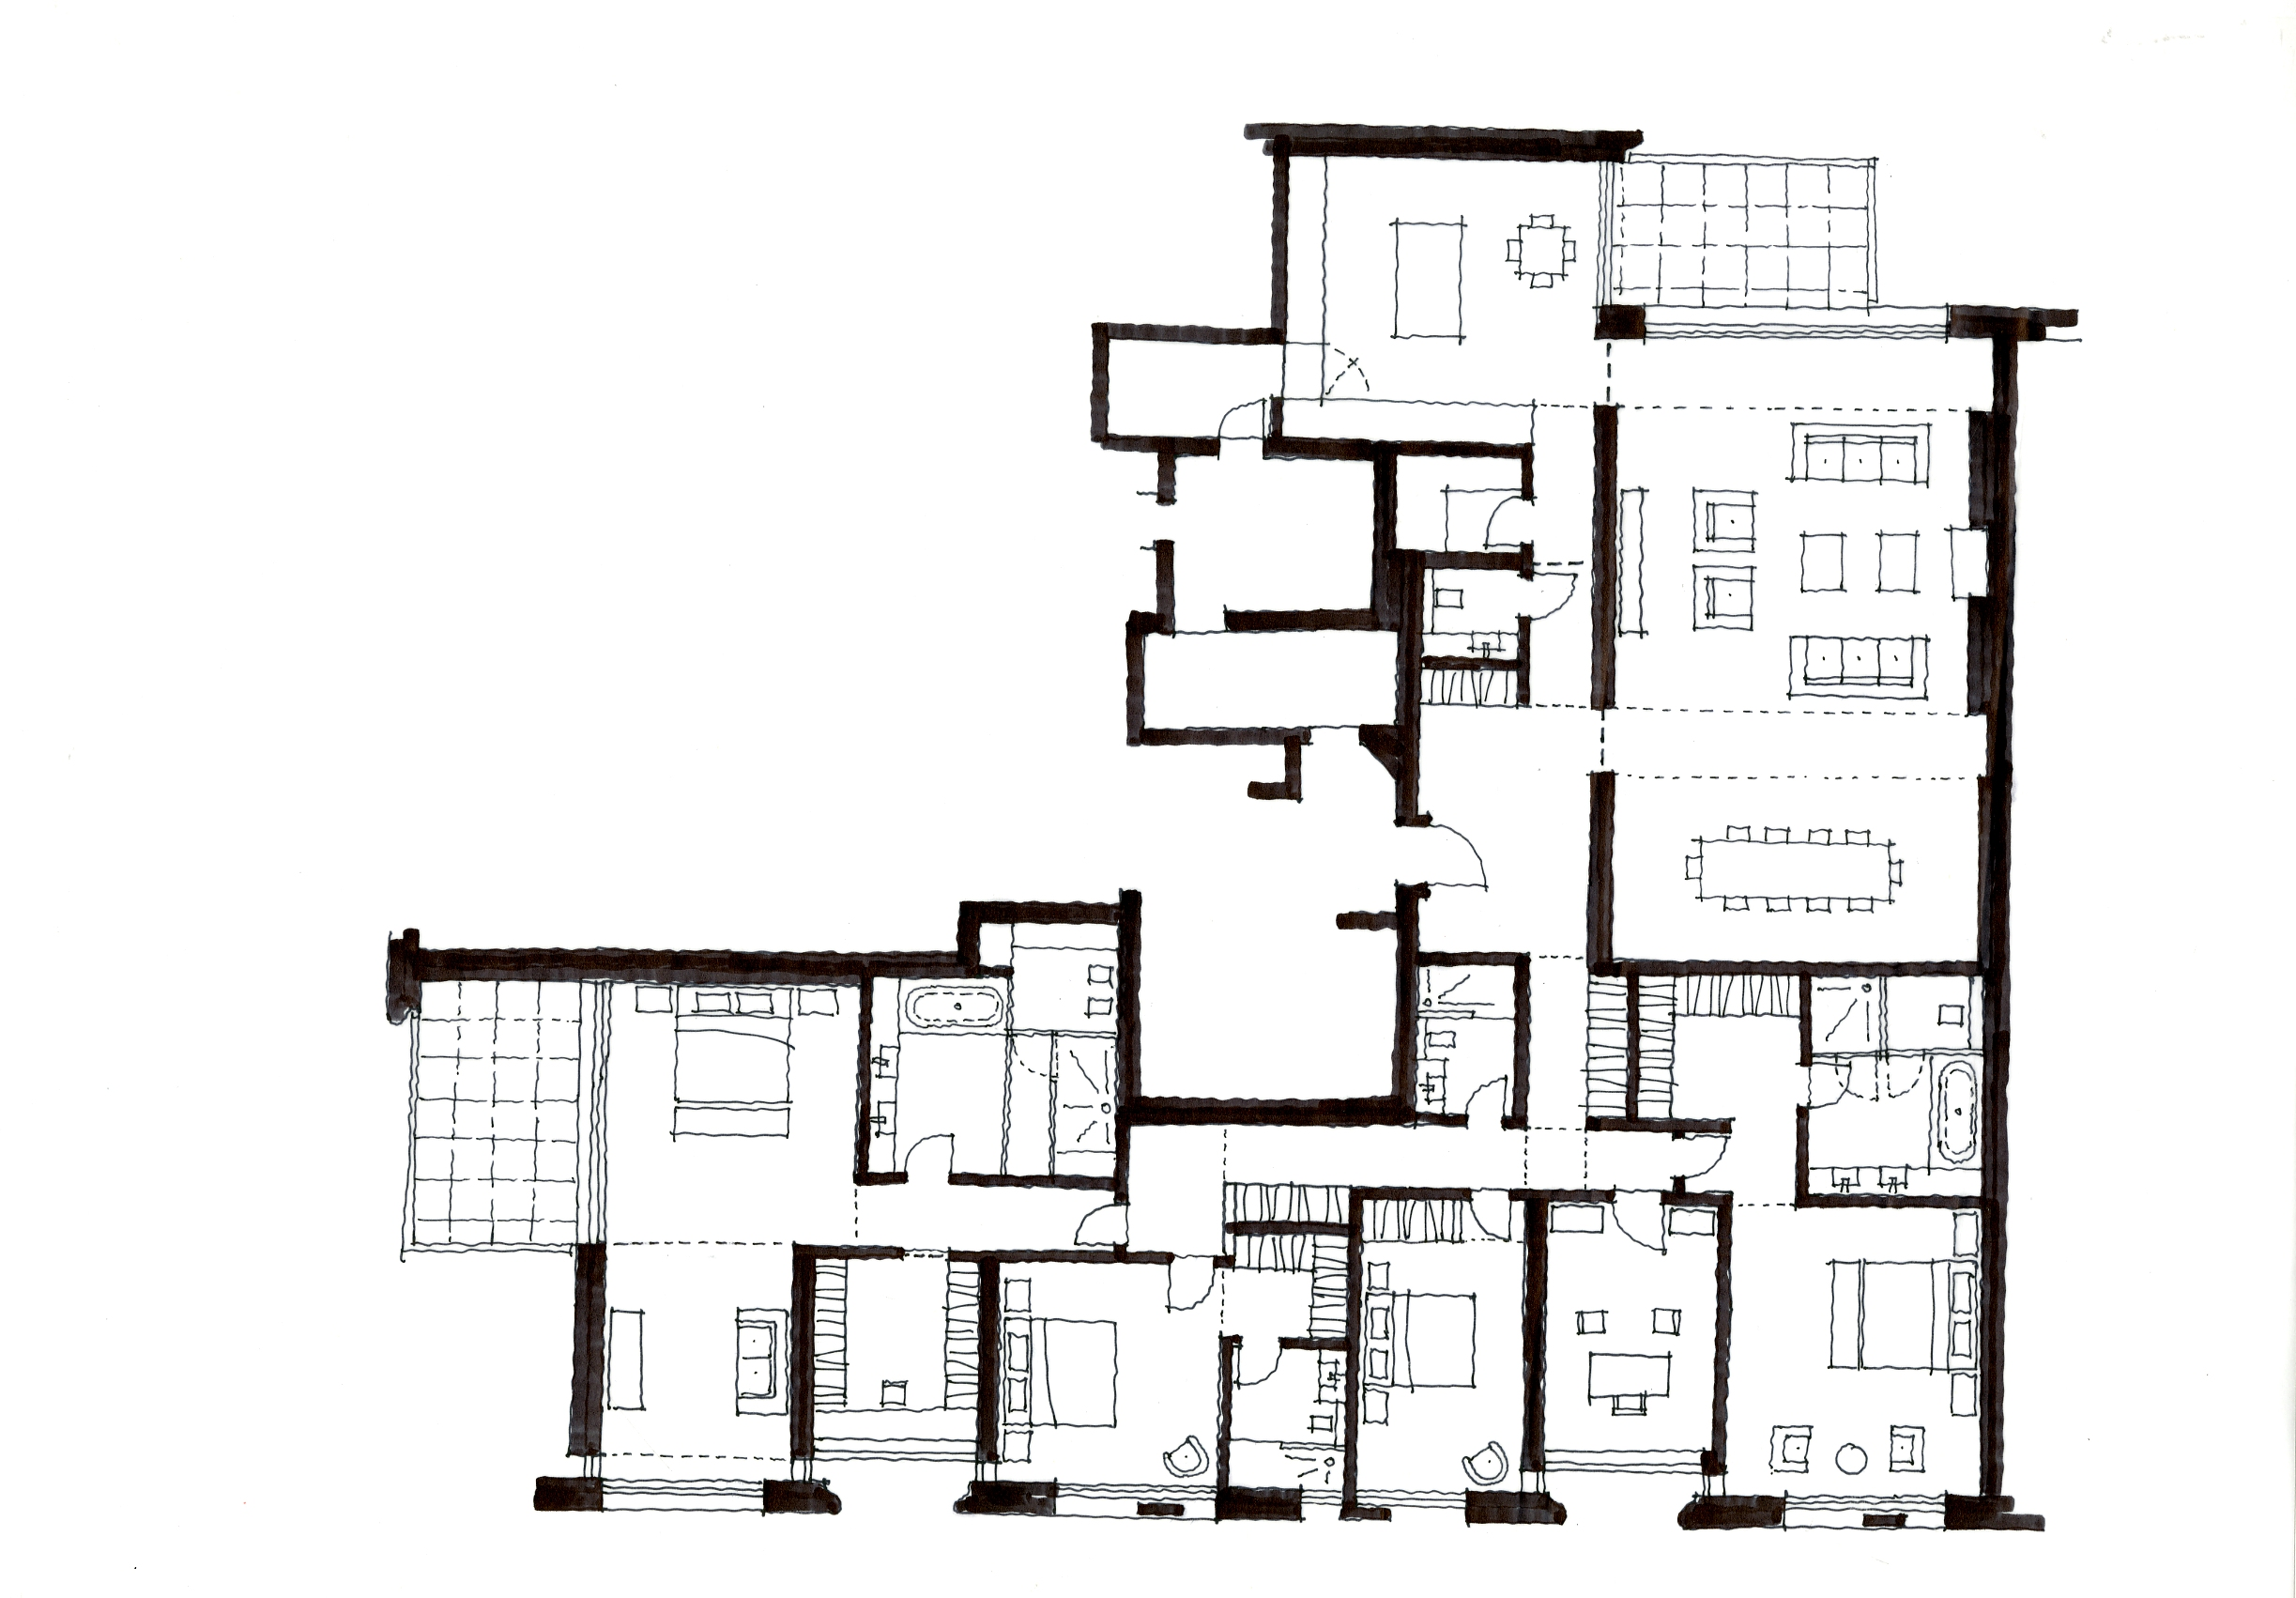 initial design of apartment layout